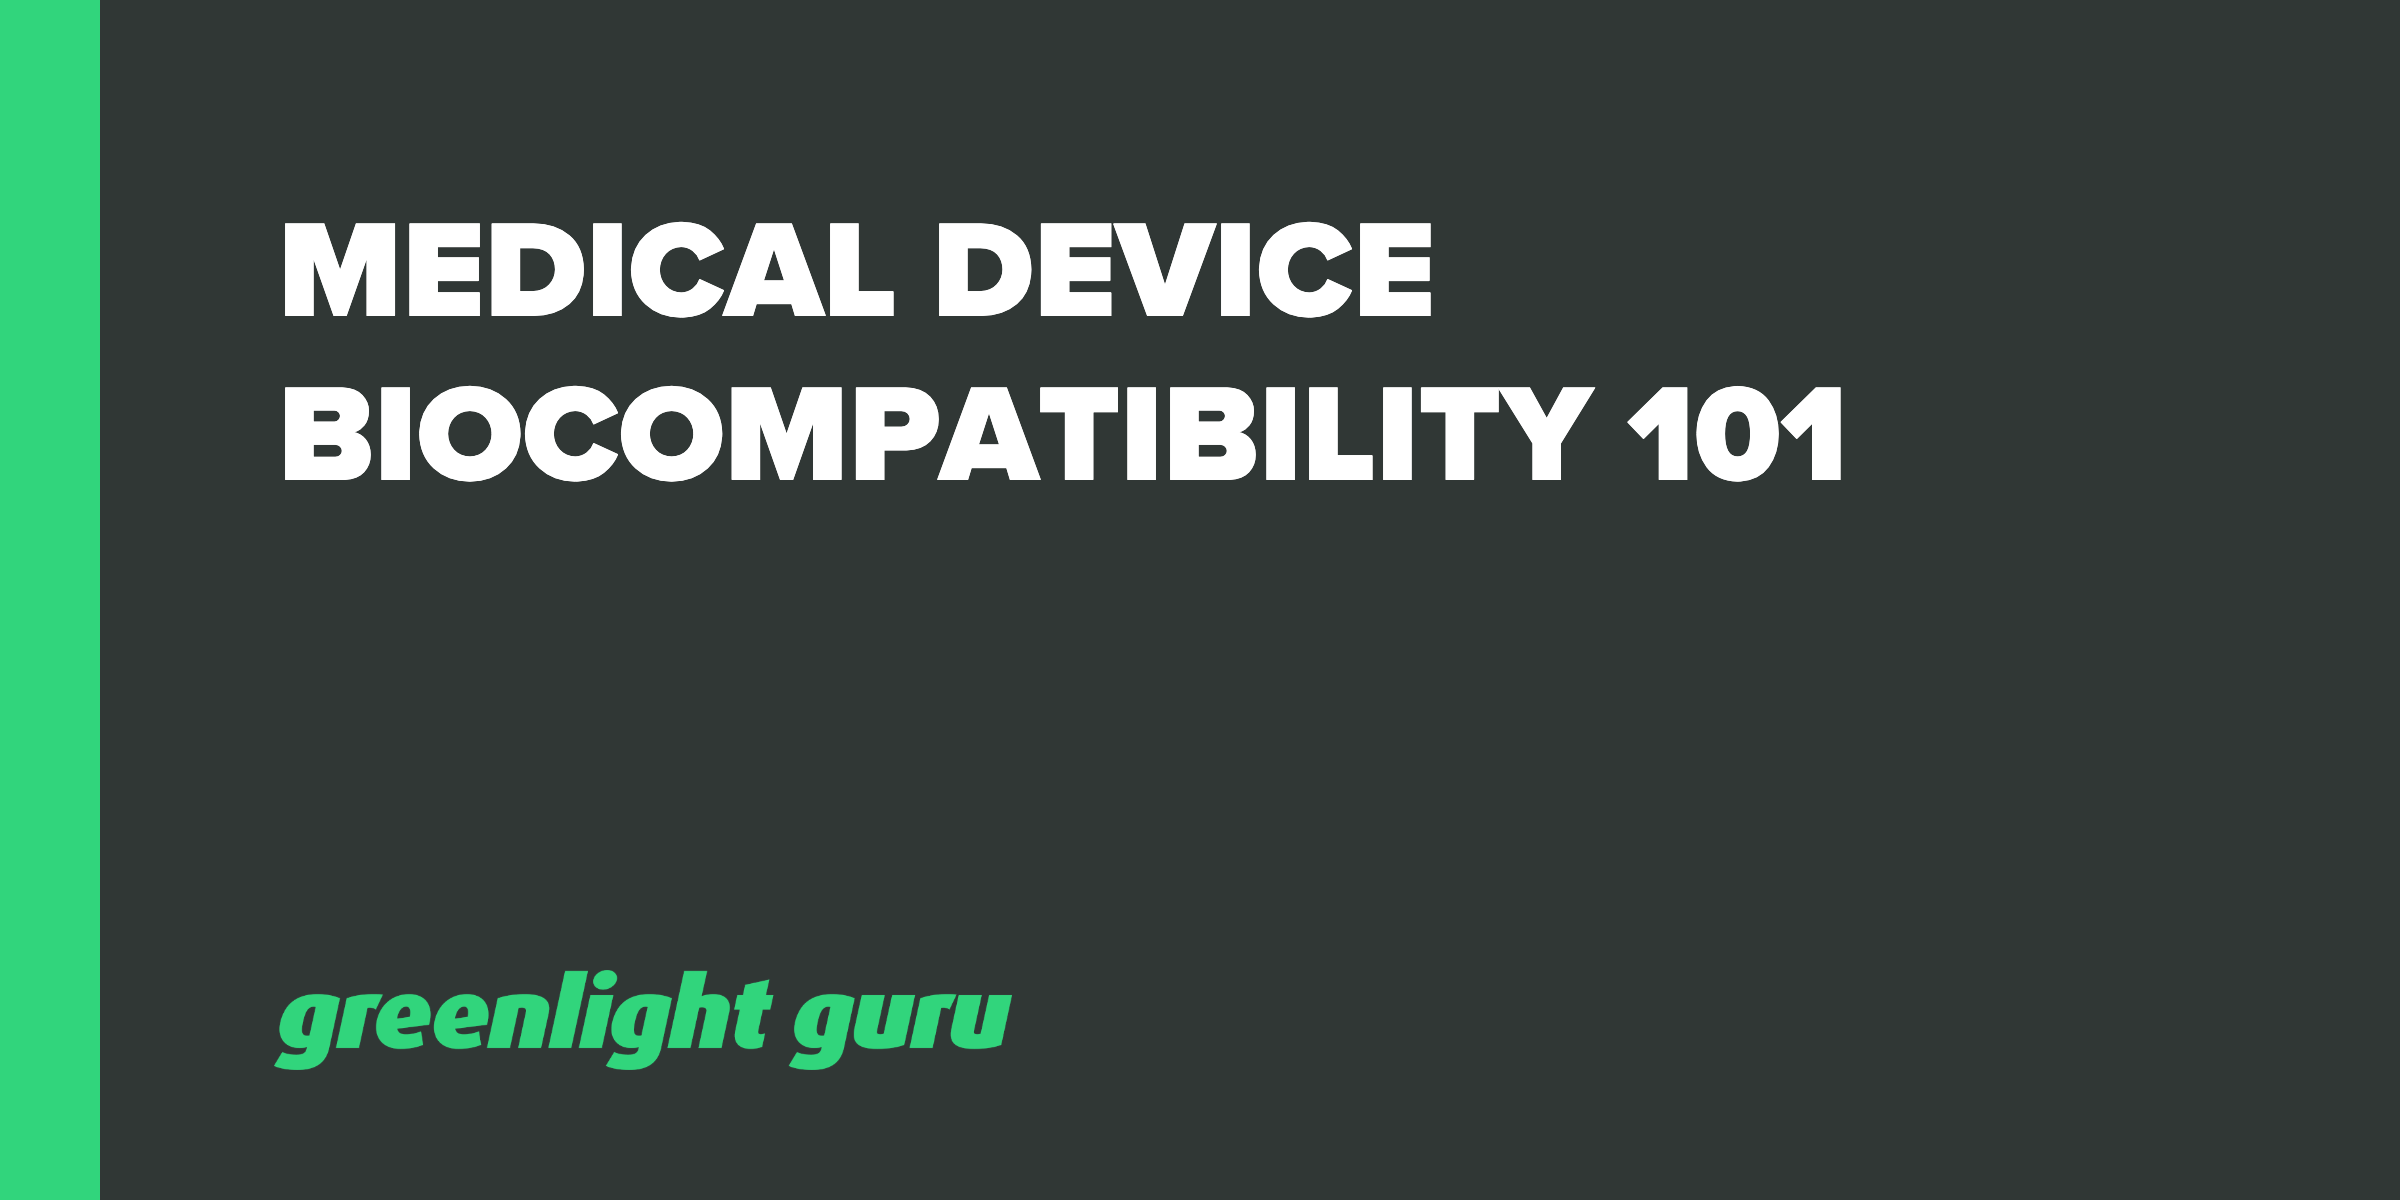 Medical Device Biocompatibility 101